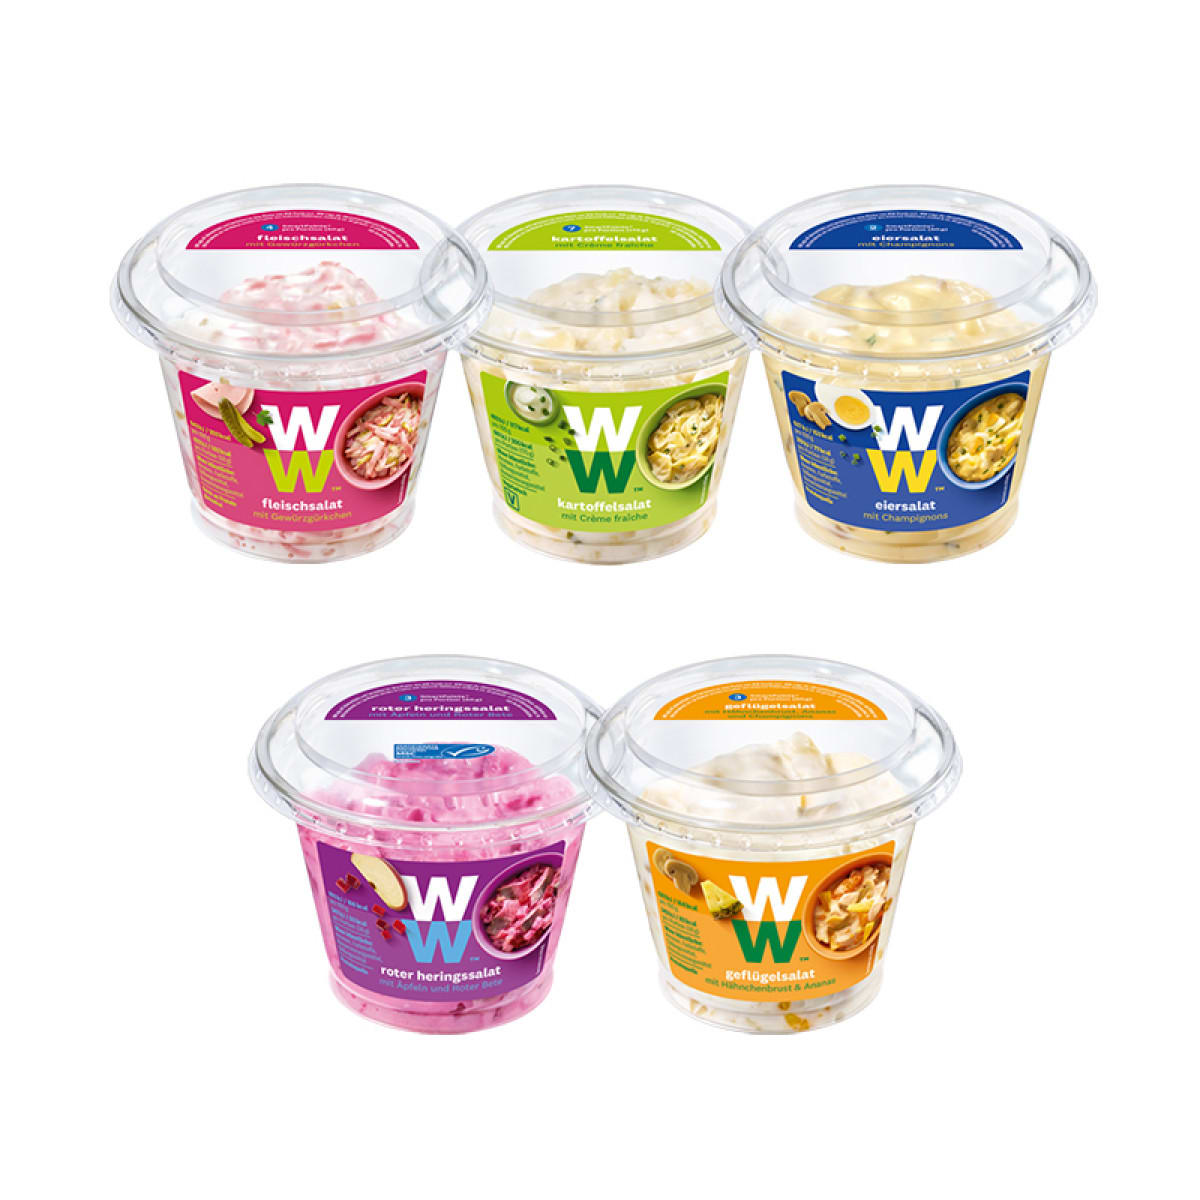 WW Feinkostsalate 5er Pack